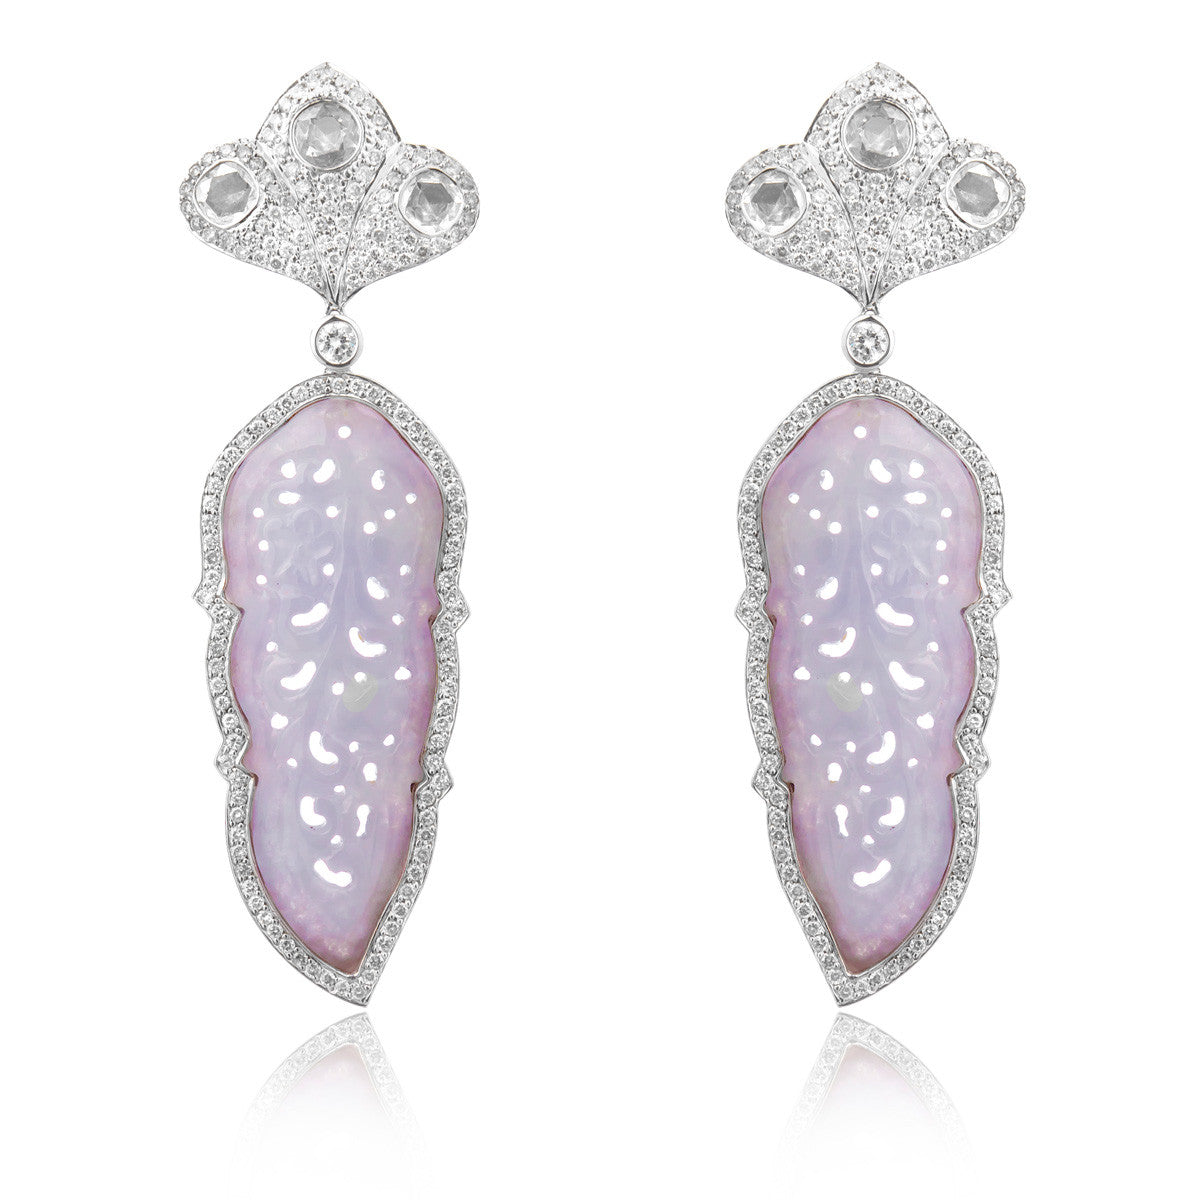 Lavender Grade A Jade and Diamond Earring